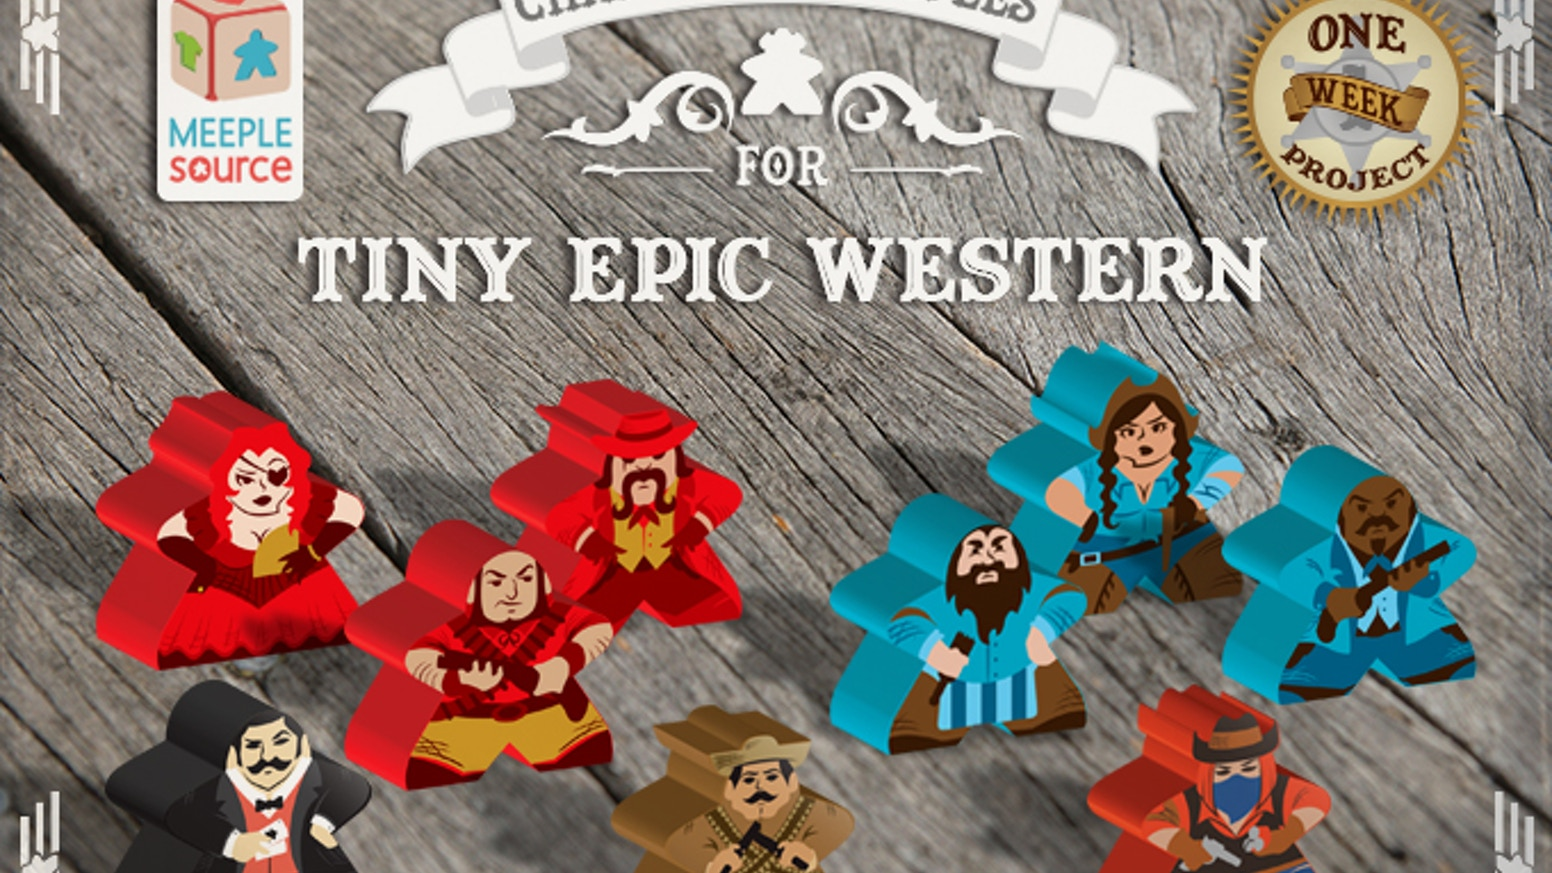 Meeple Source and Gamelyn Games have teamed up again with some stunning Posse and Boss Meeples for Tiny Epic Western! Yee haw!